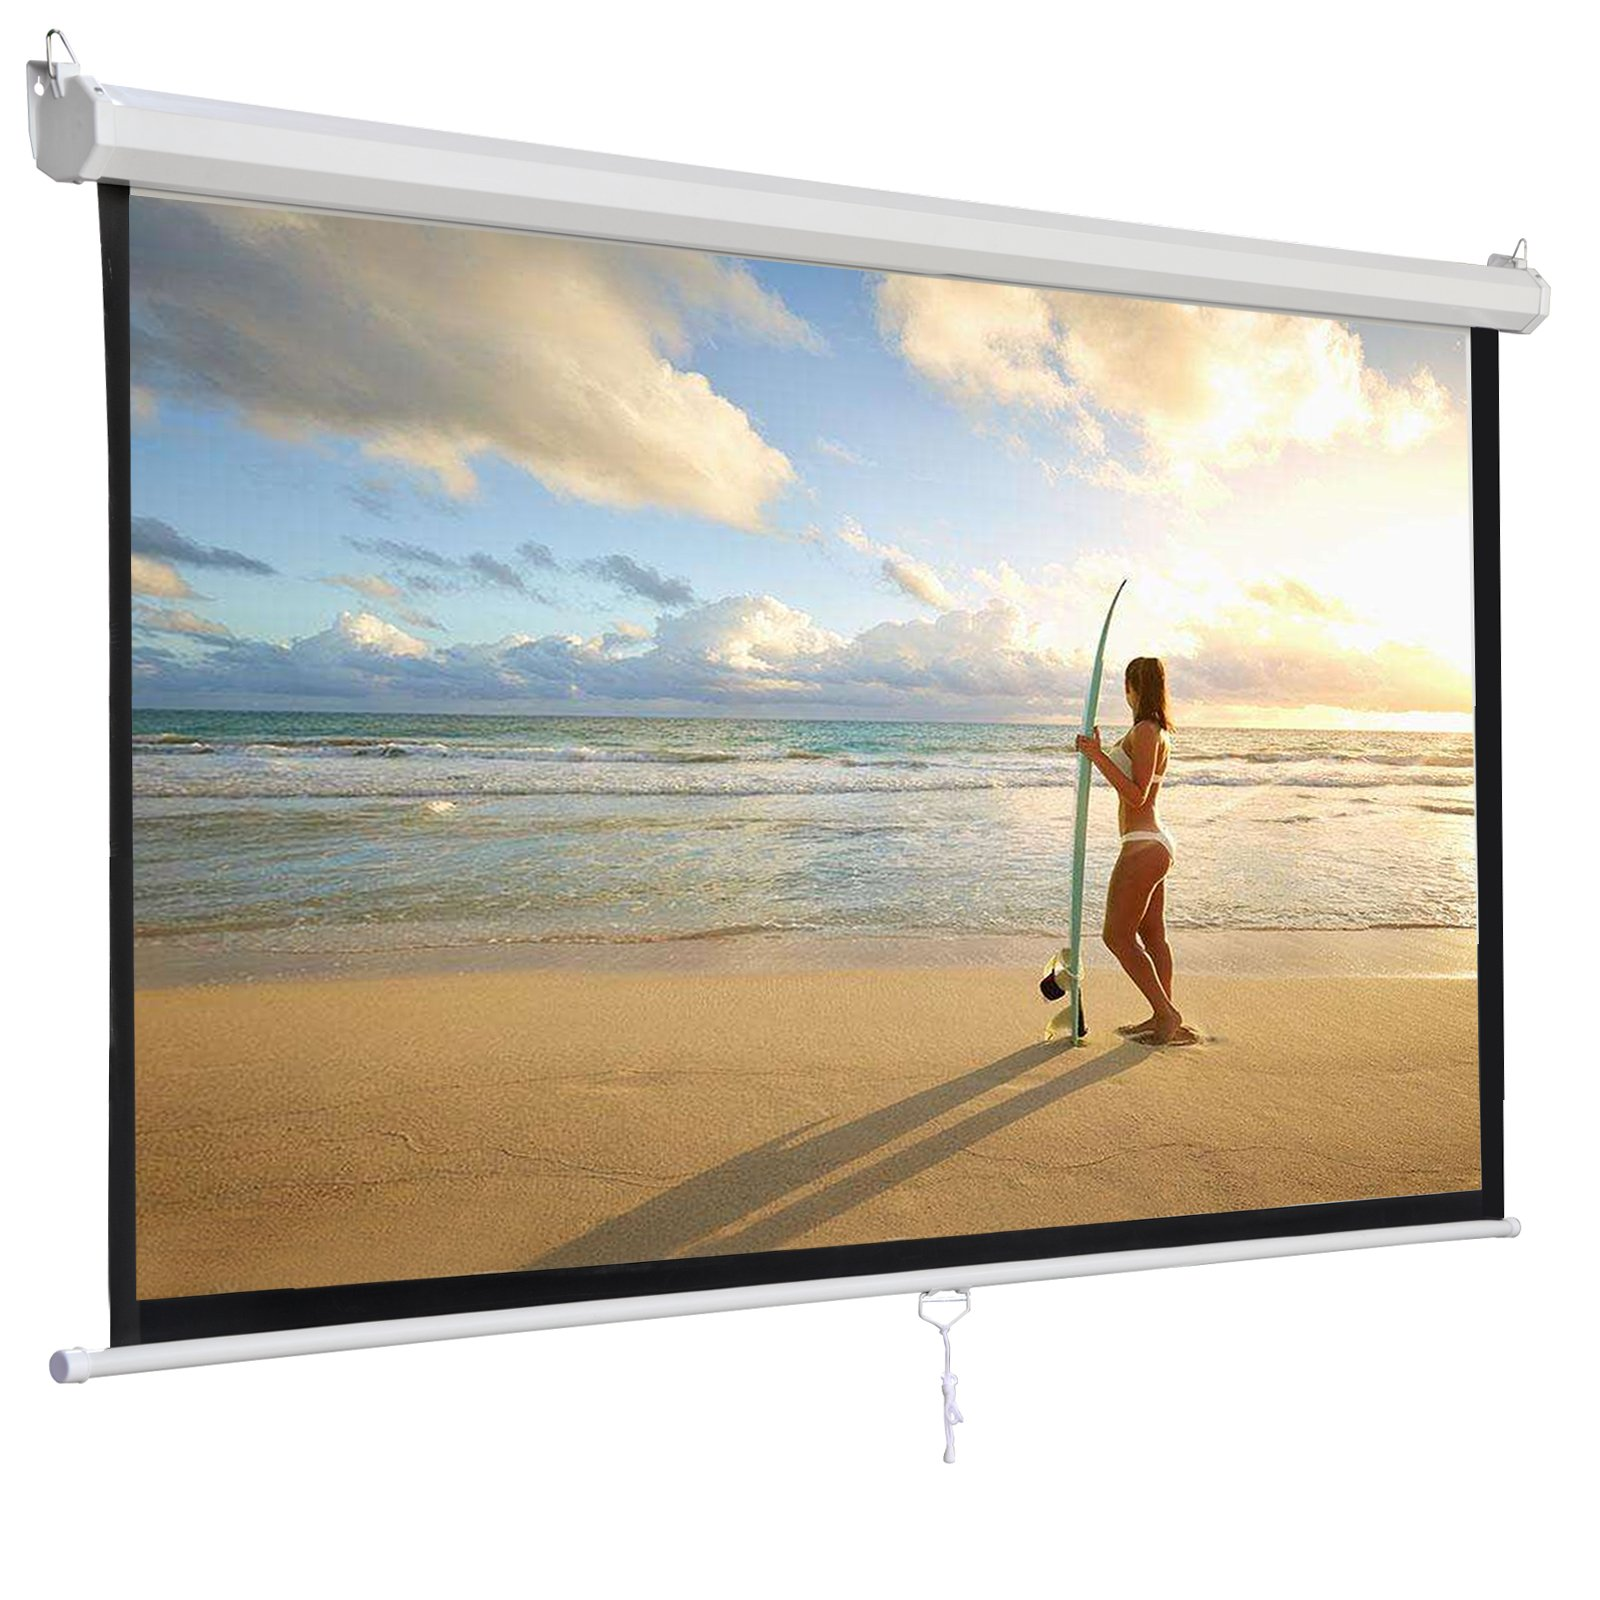 ZENY 119'' L Manual Projector Projection Screen Pull Down Screen Portable Projector Movies Screen for Home Theater Outdoor Indoor